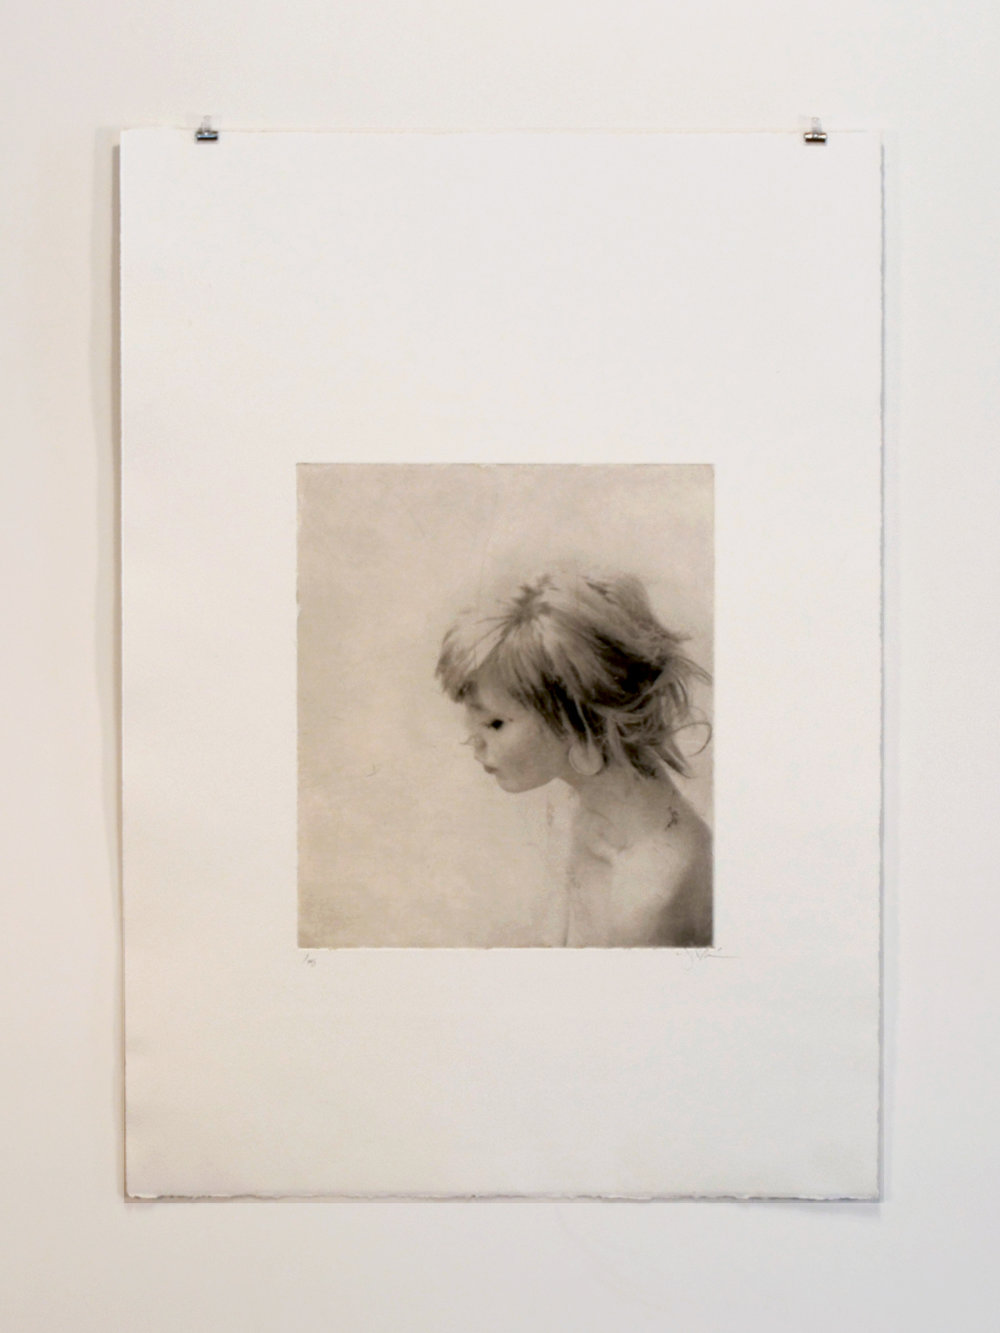 15 x 21 photogravure on Somerset Satin with gampi chine-collé